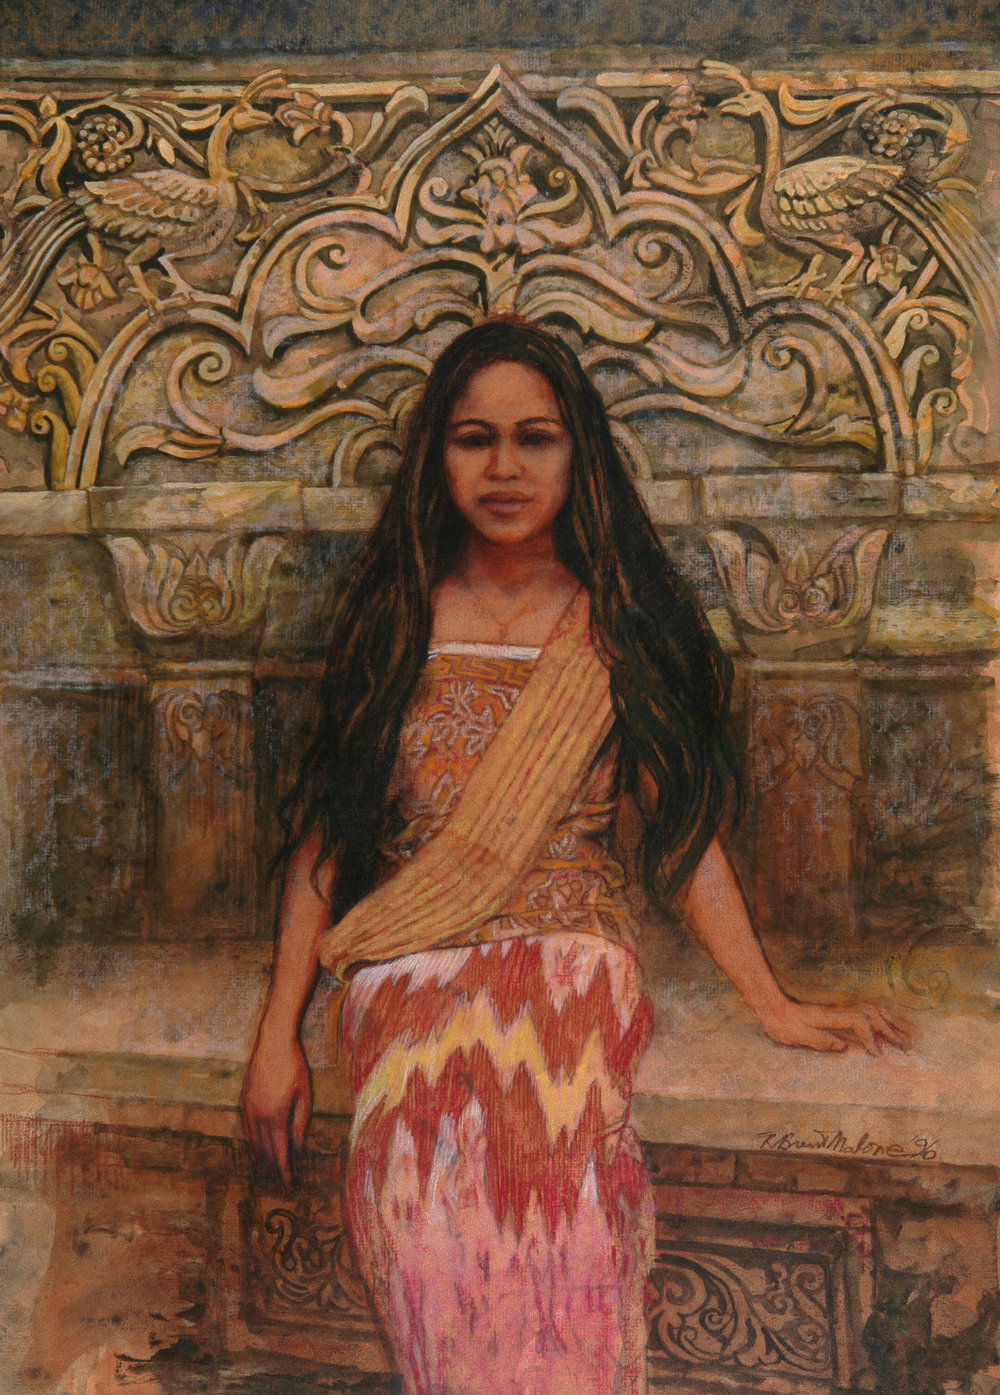 """Bali Girl with Scarf"" (1996), R. Brent Malone, watercolour on paper, 29 ½ x 21. Part of the Dawn Davies Collection."